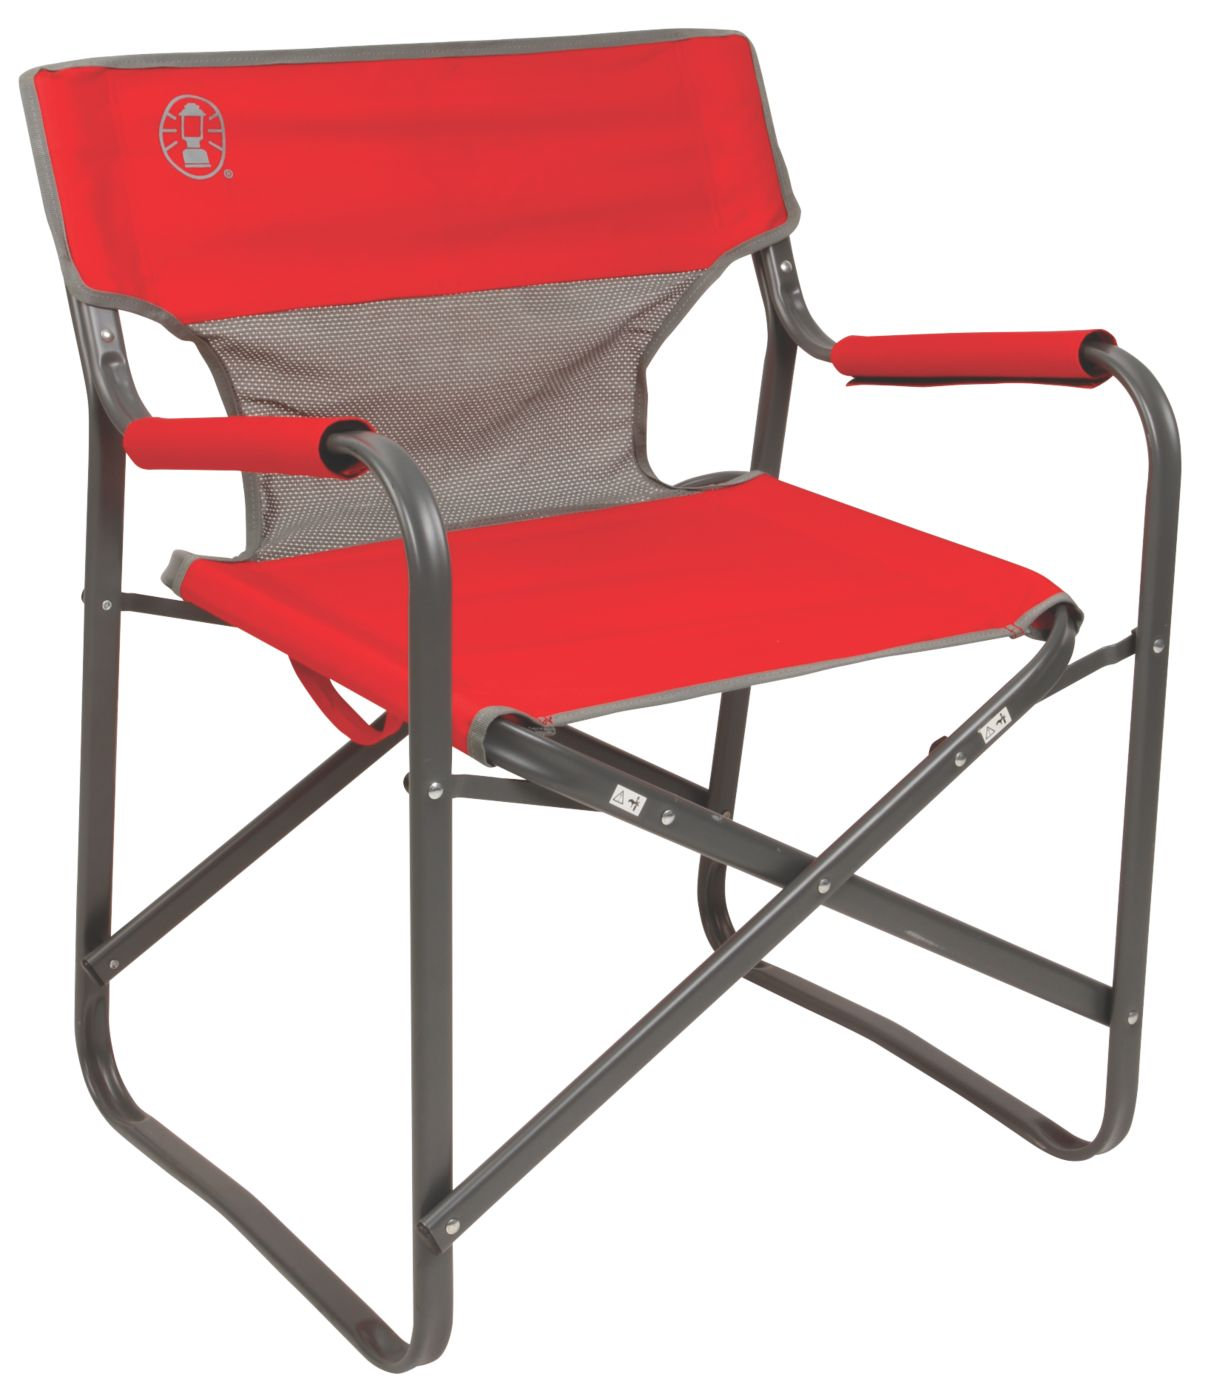 Outpost™ Breeze Deck Chair  sc 1 st  Coleman & Camping u0026 Folding Chairs | Coleman